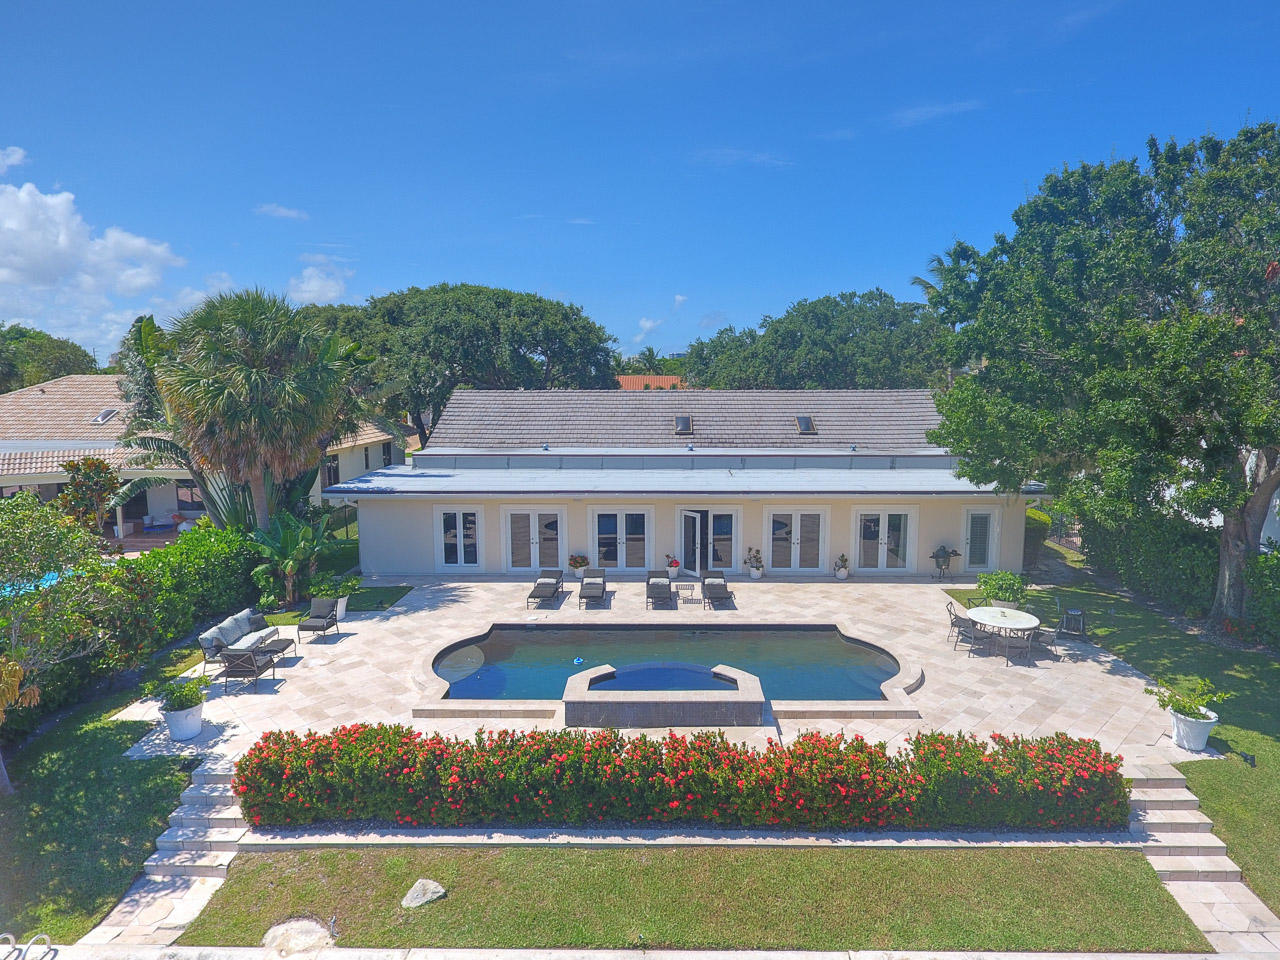 136 Ebbtide Drive, North Palm Beach, Florida 33408, 4 Bedrooms Bedrooms, ,4.1 BathroomsBathrooms,A,Single family,Ebbtide,RX-10441376